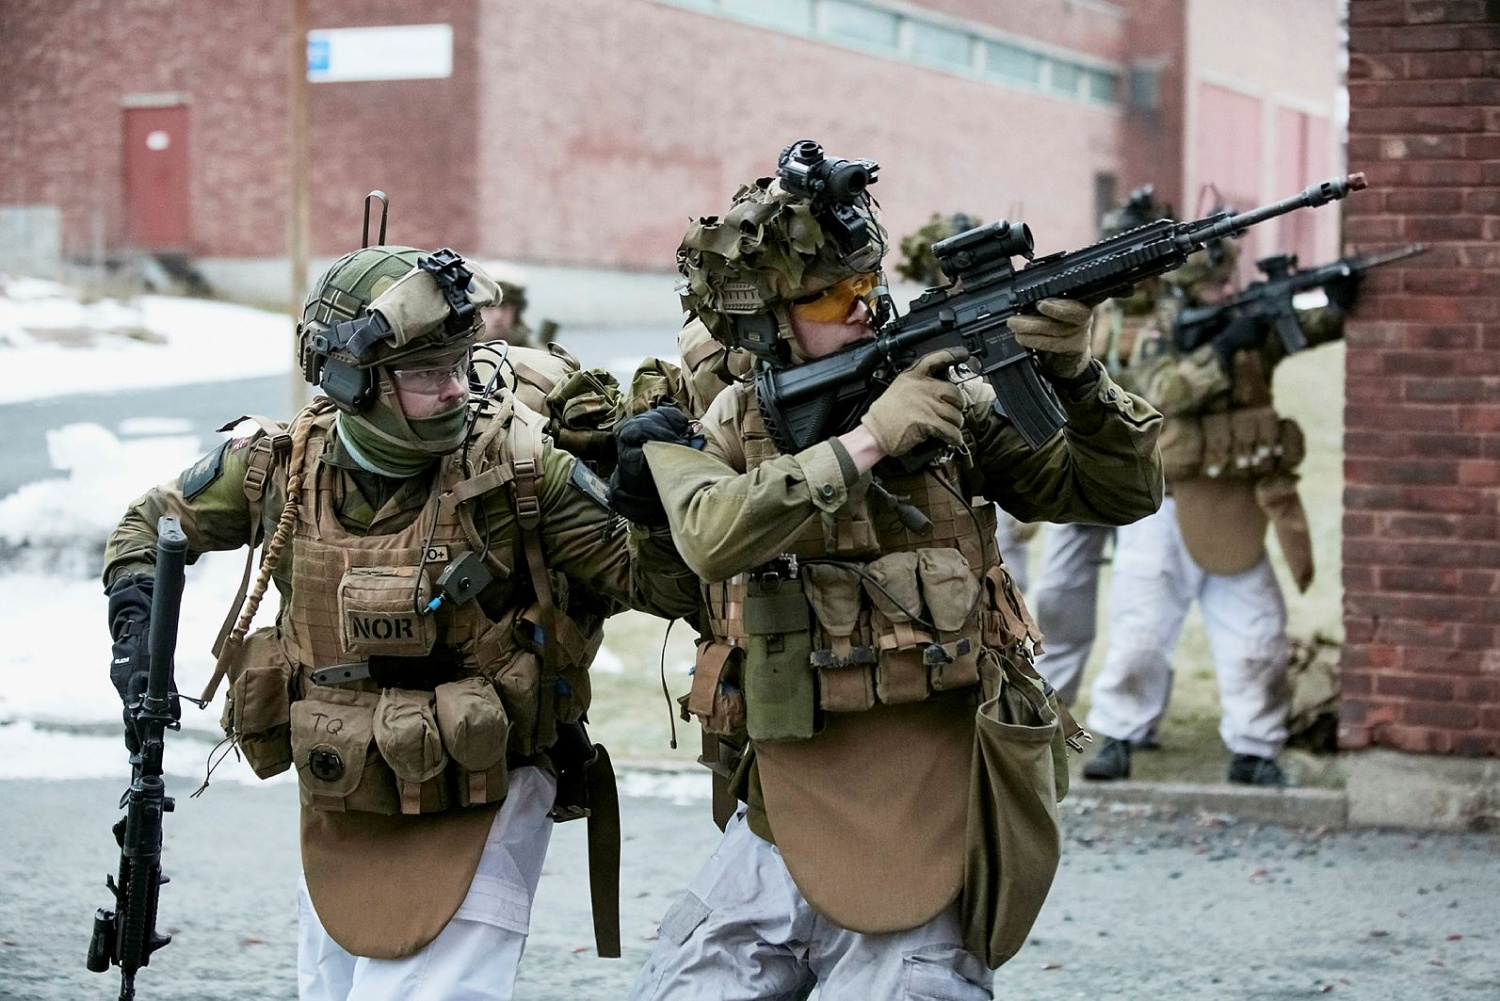 Norway Looking For New 50 Bmg Heavy Machine Guns The Firearm Blog